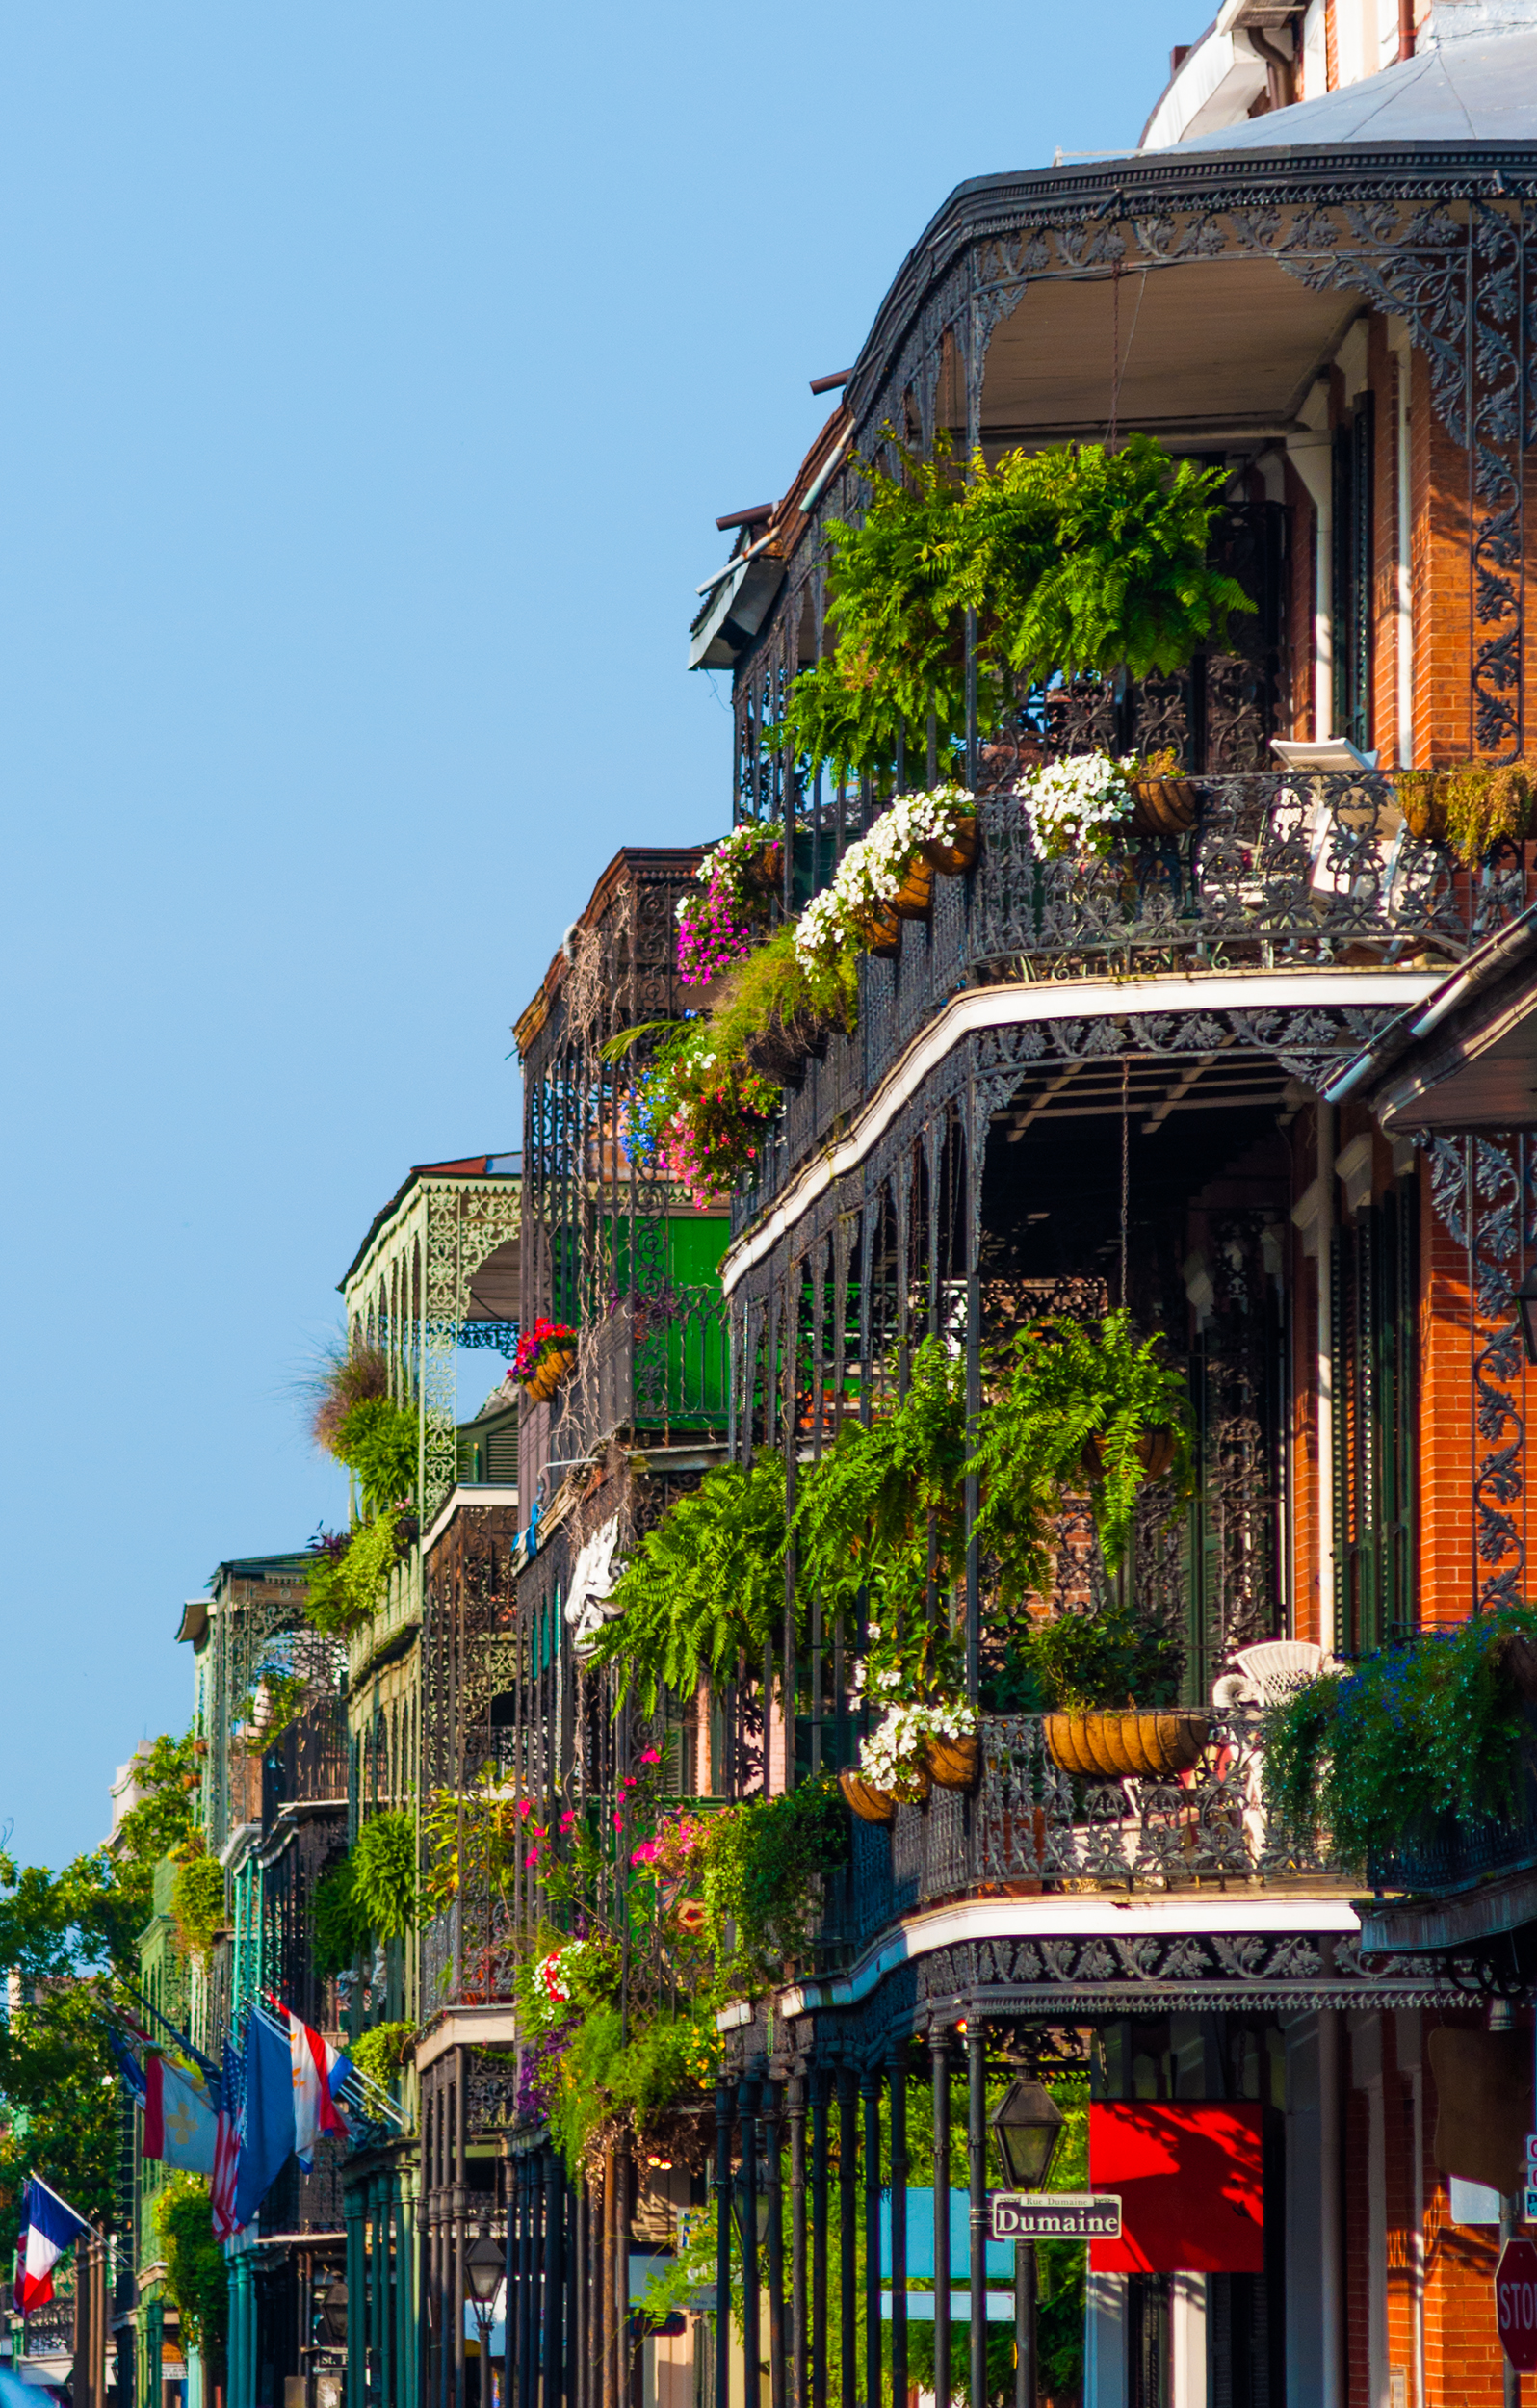 French Quarter Buildings with Garden Terraces